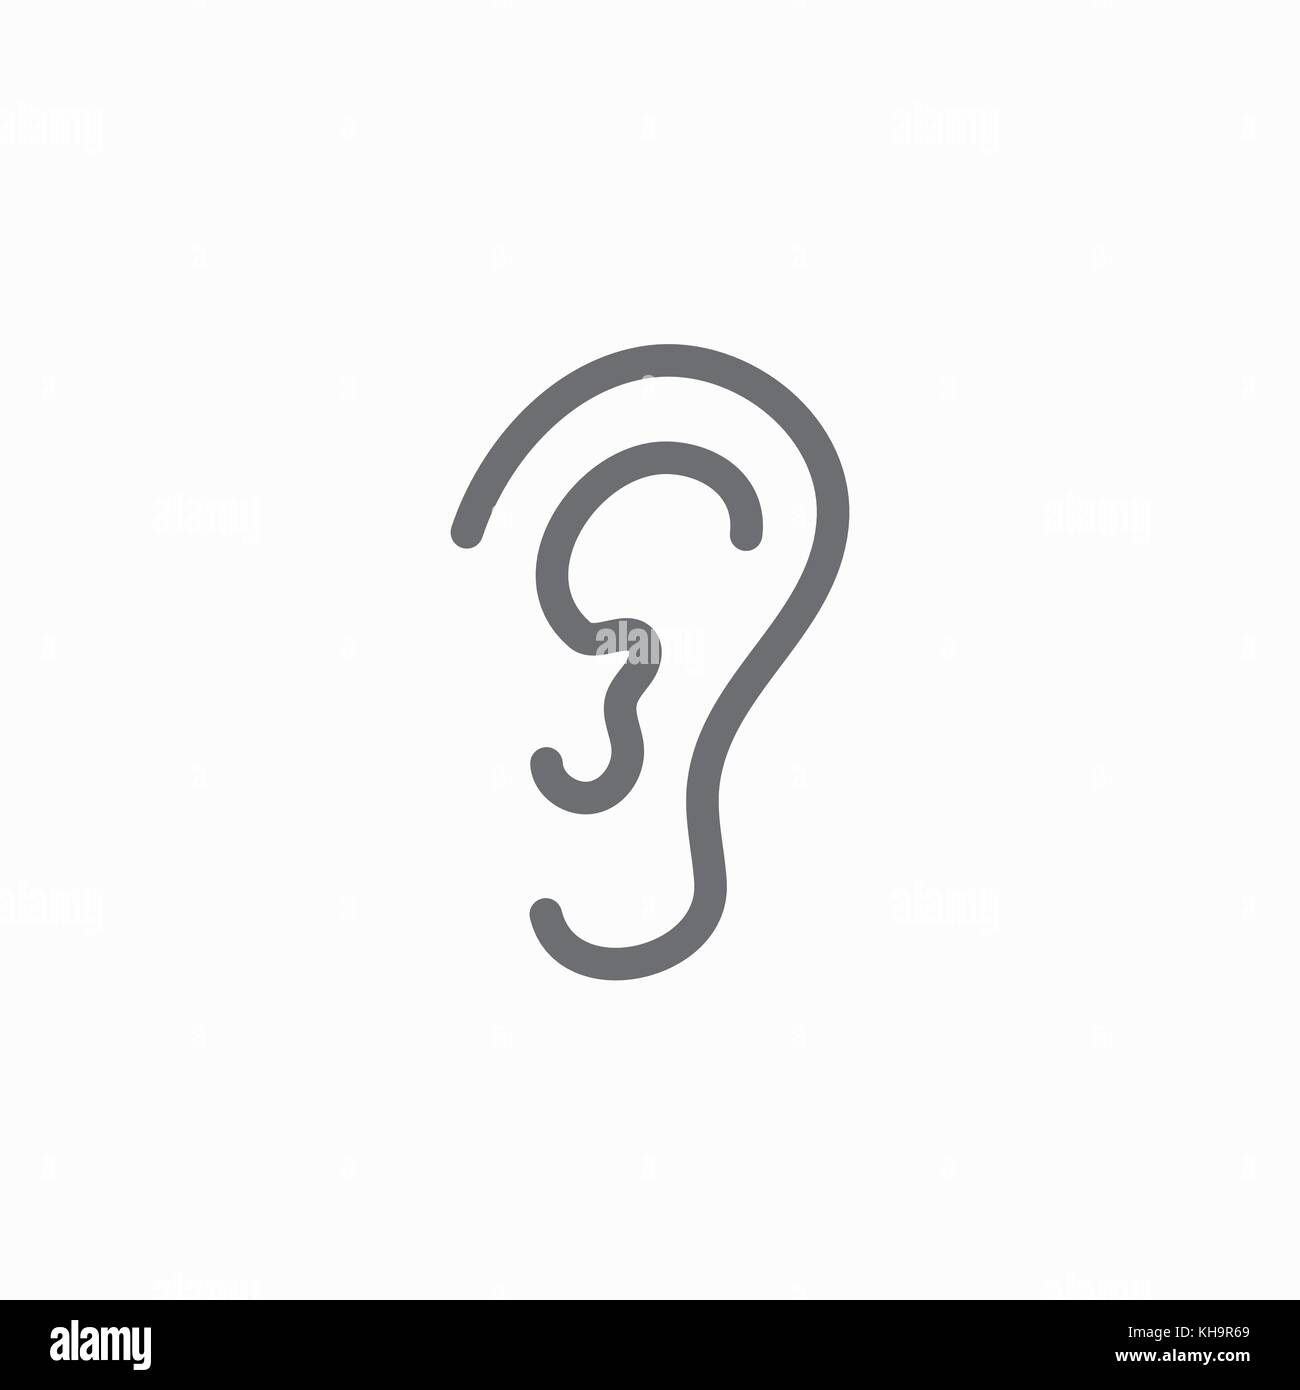 hearing loss outline If you have hearing loss, we can help you communicate better with hearing people through some simple communication tips similarly, if you're hearing, we have some simple and effective tips.